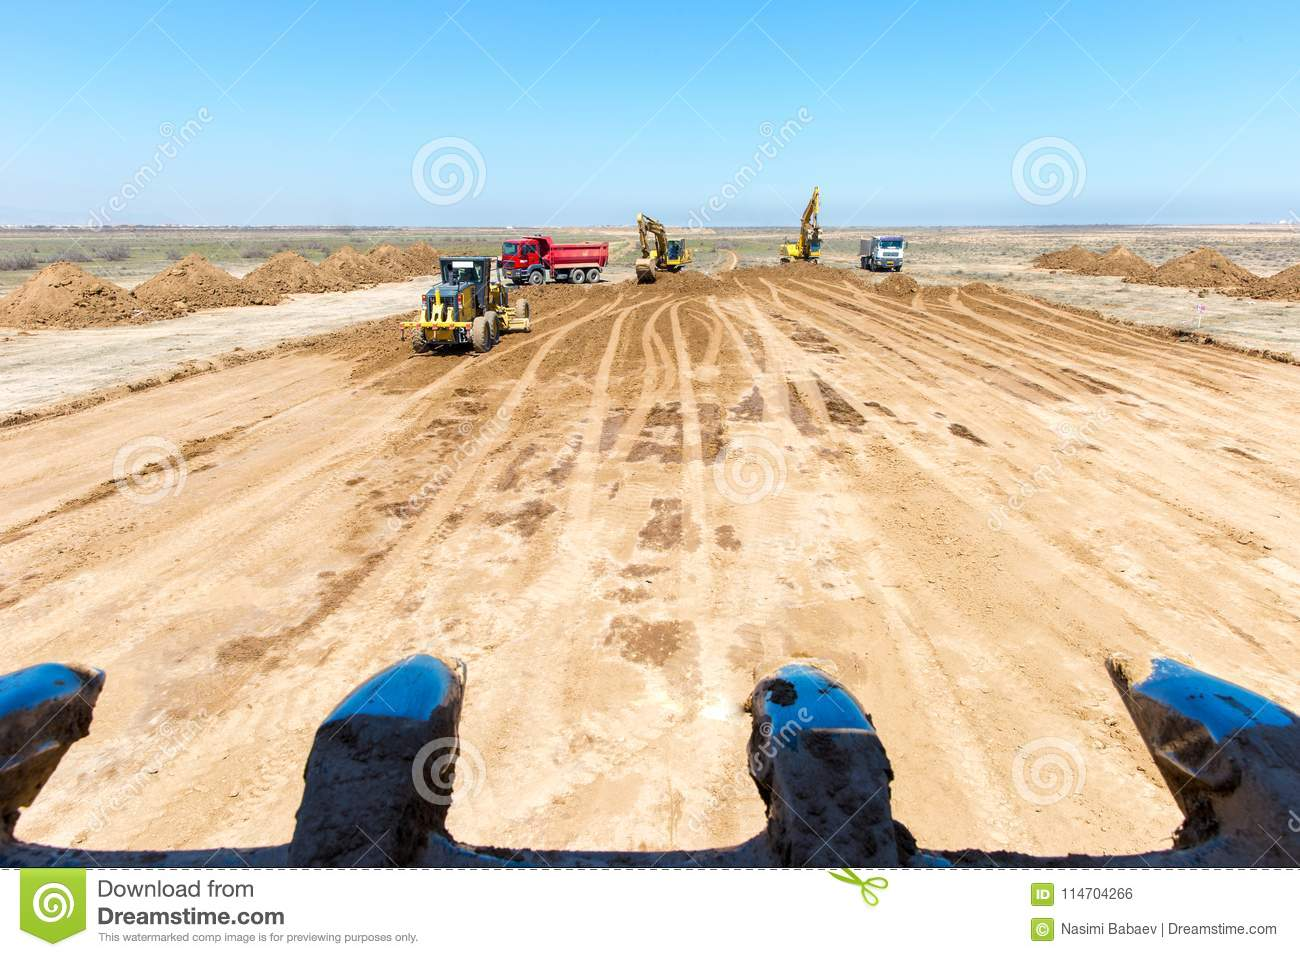 New Road Construction In Process  Stock Photo - Image of loading